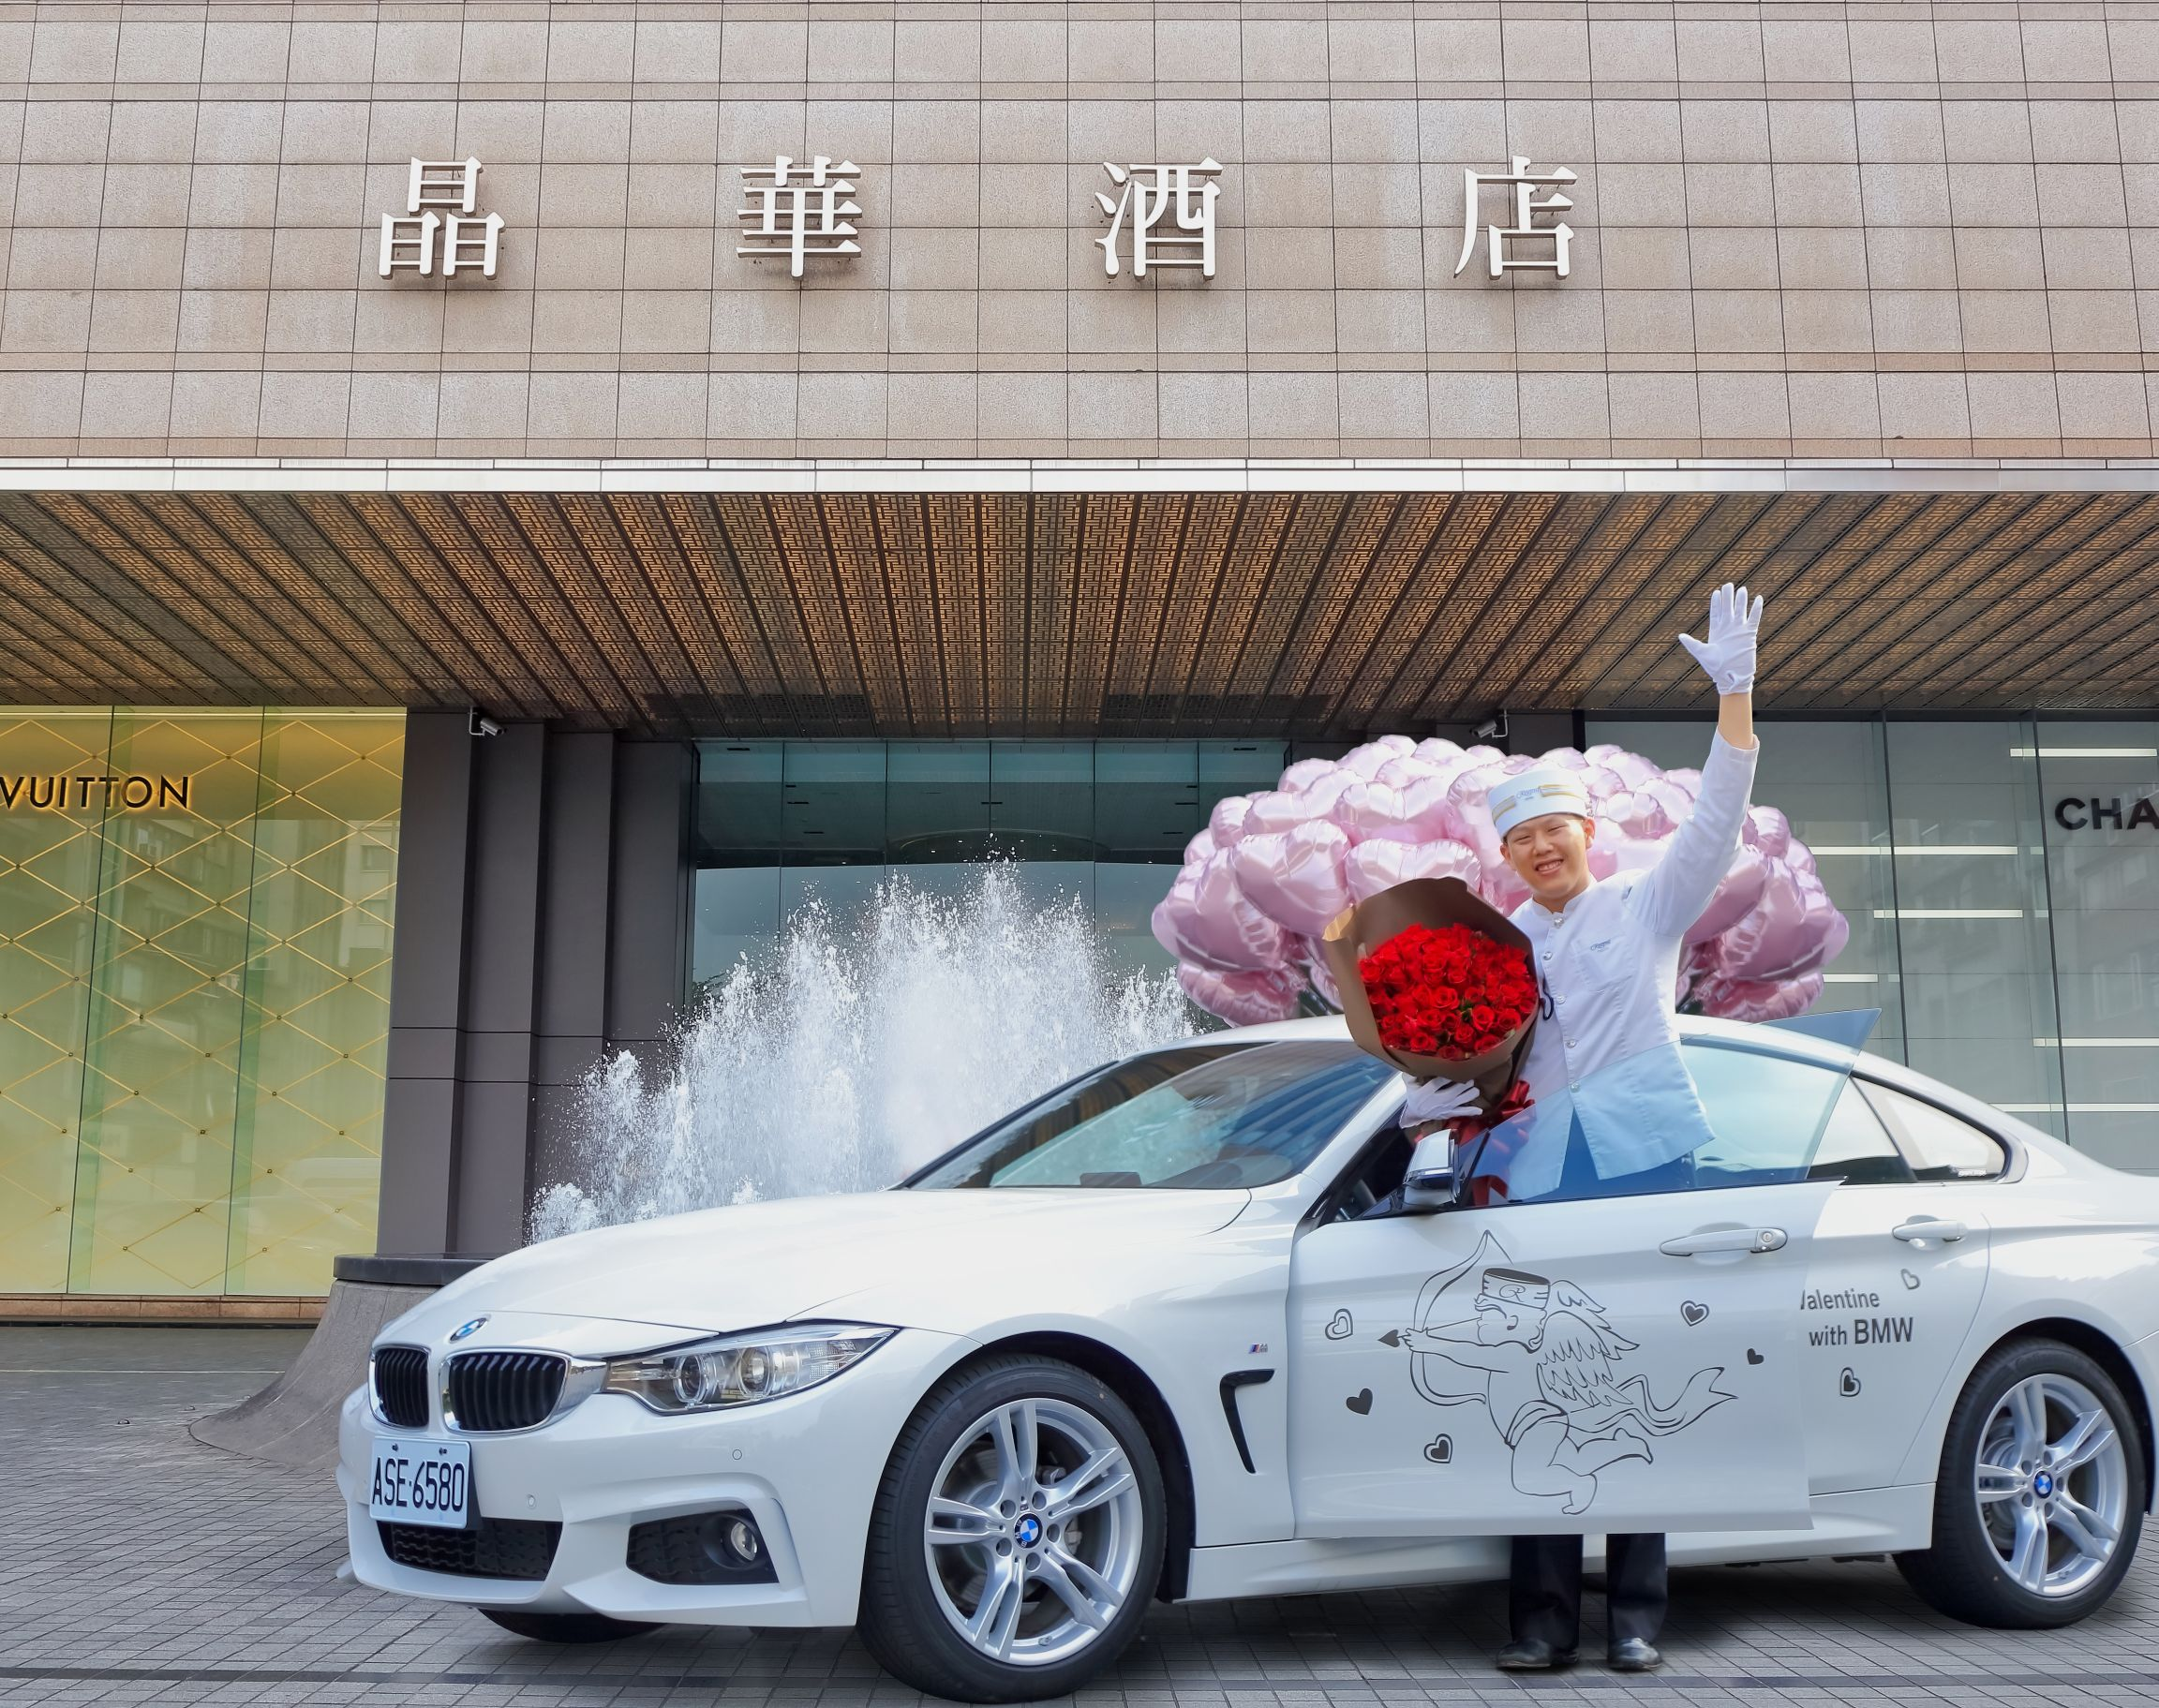 Regent Hotel staff carrying bouquet of roses climbs out of BMW Gran4Coupe.